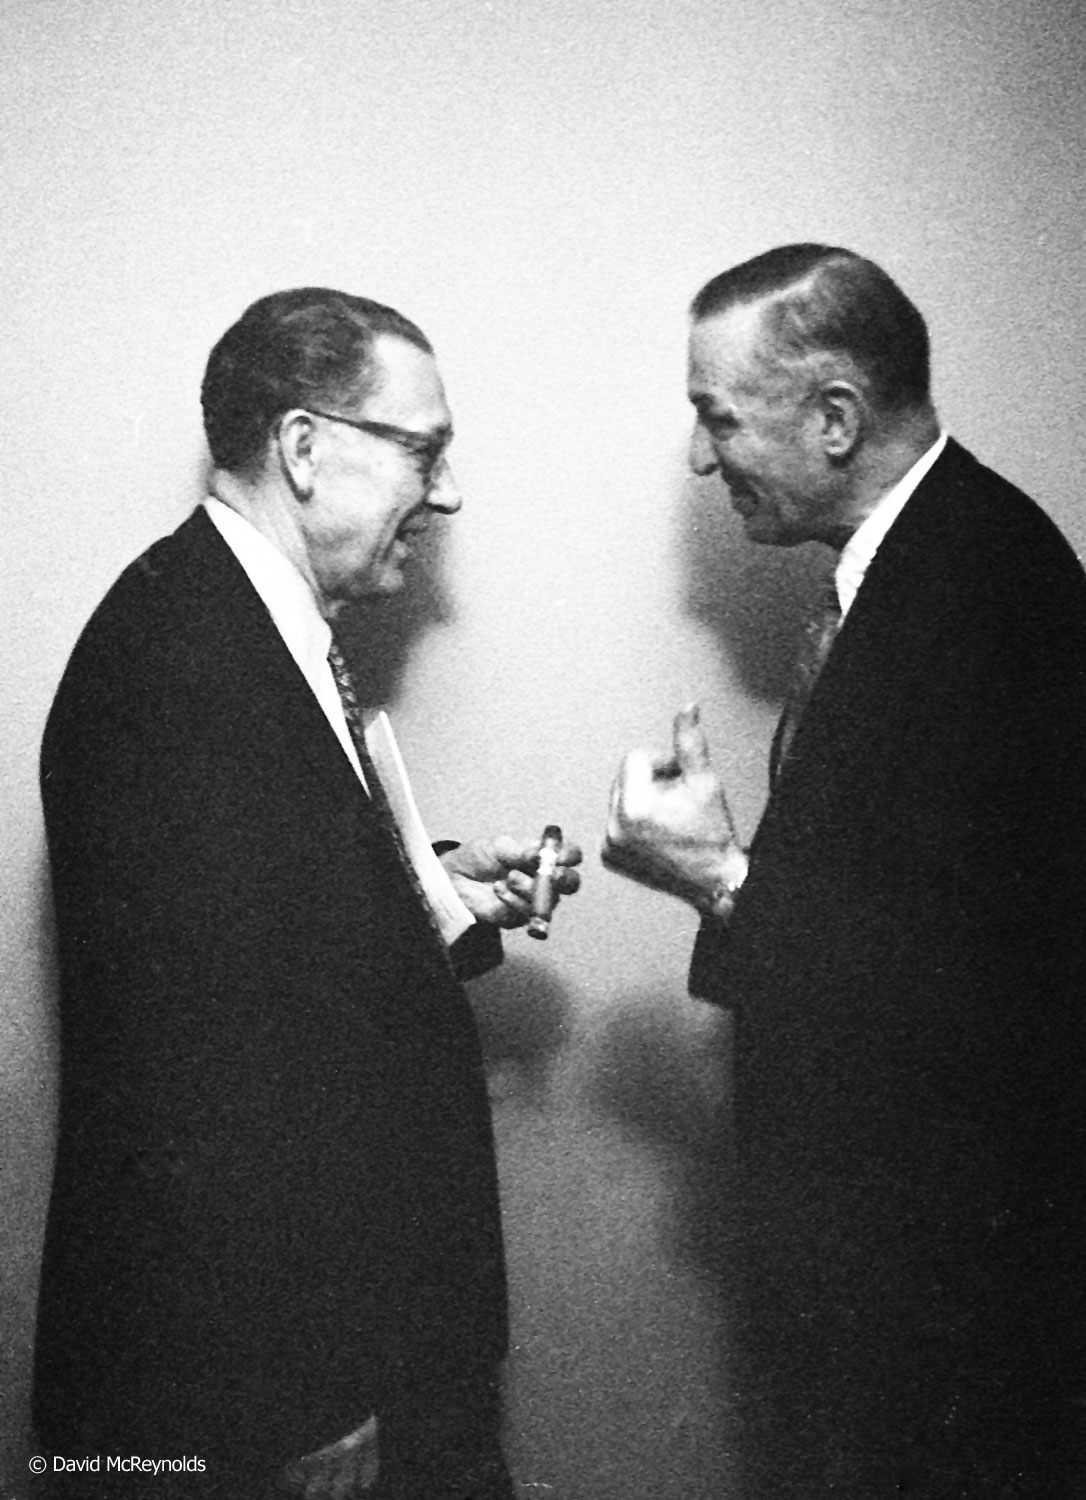 Gus Gerber (left) and Louis Waldman of the SDF between sessions. 1957. (57-3)